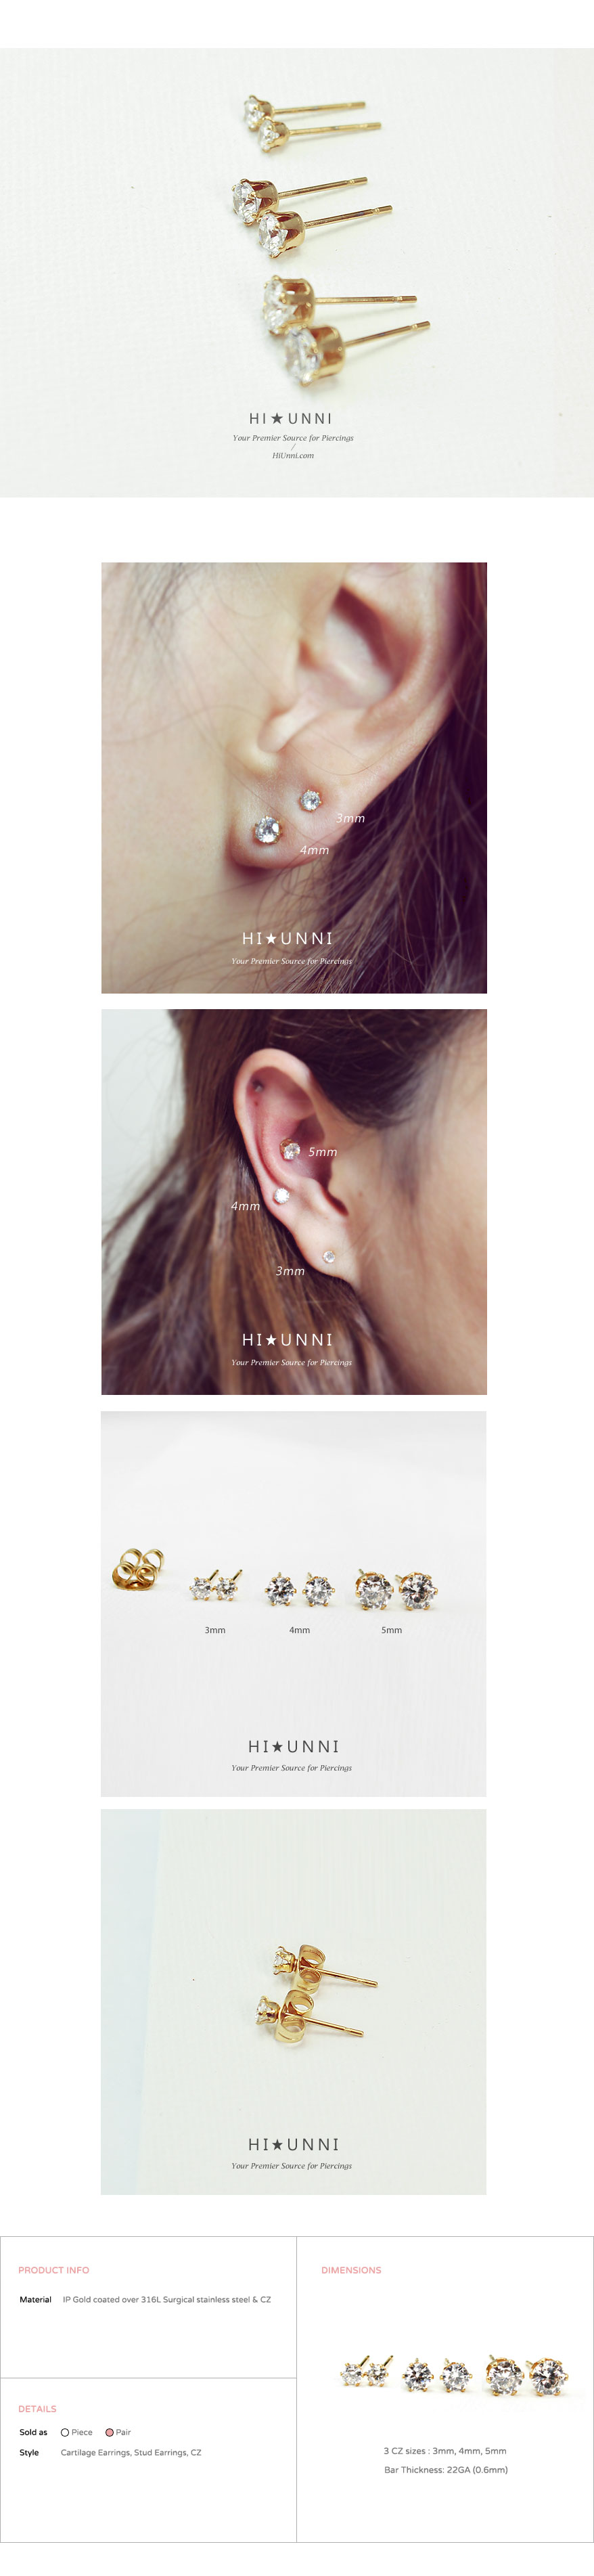 jewelry_earrings_stud_cartilage_316l_3mm_tiny_surgical_steel_round_cz_4